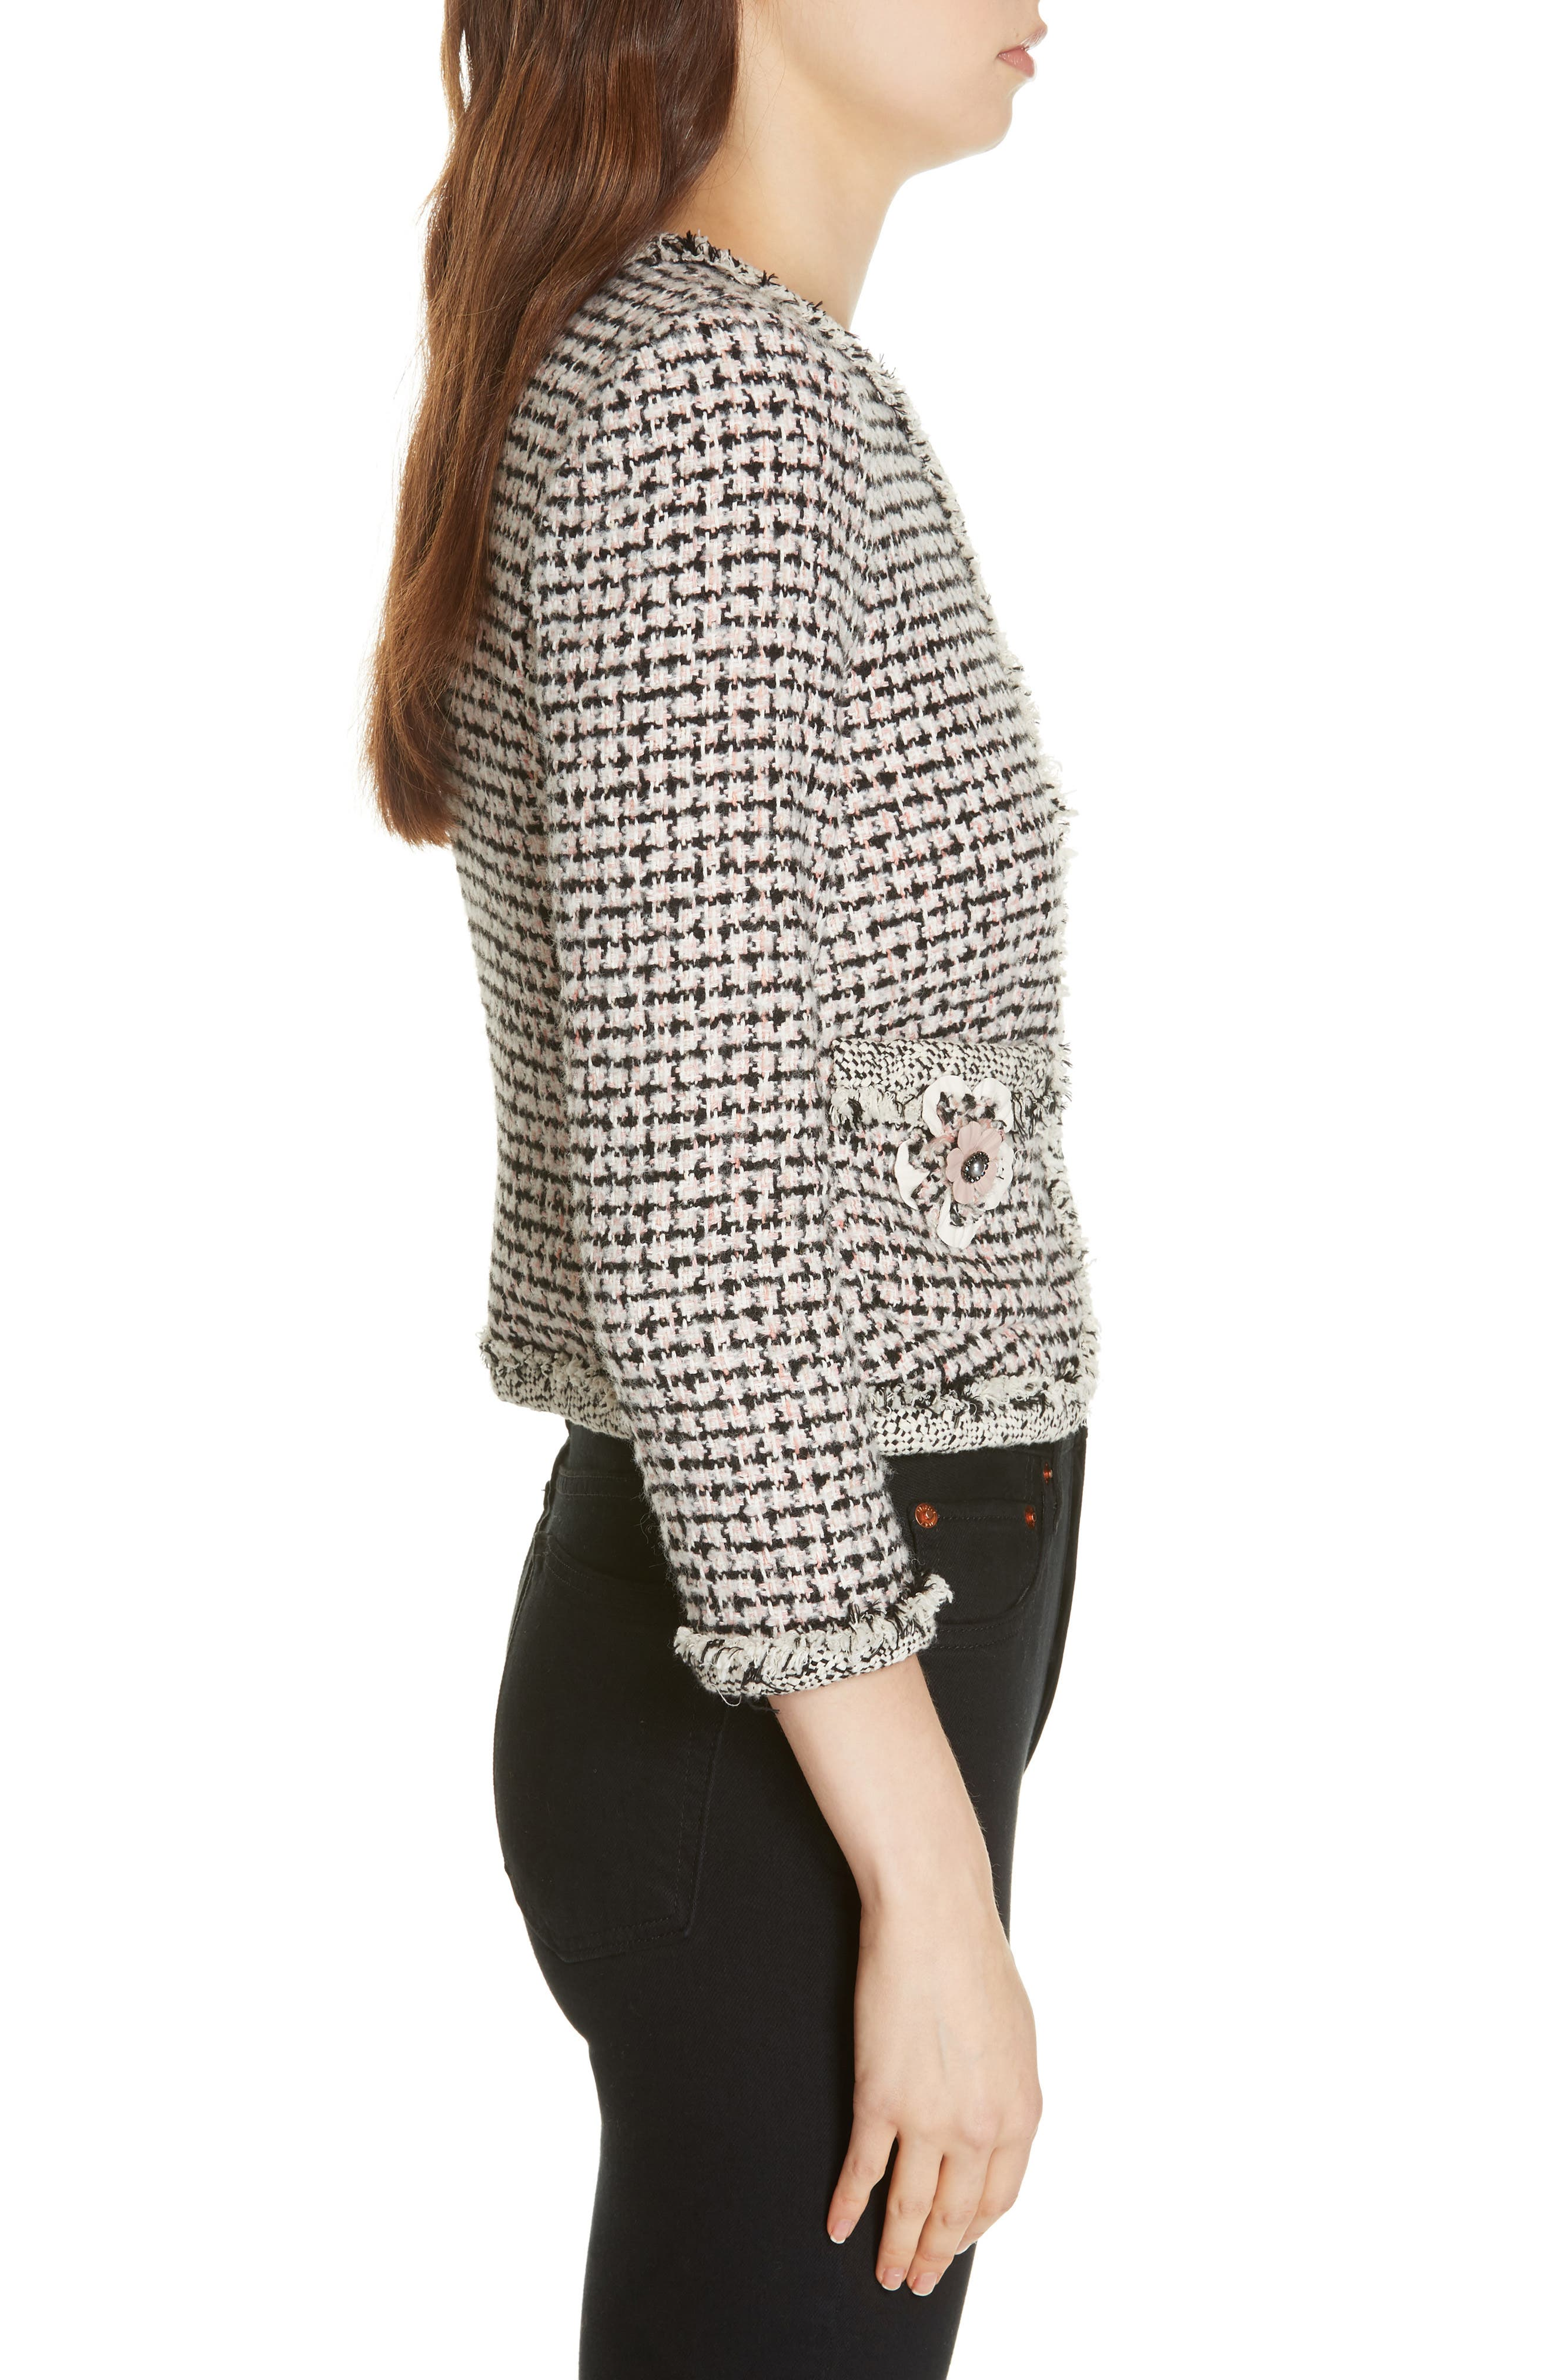 REBECCA TAYLOR, Houndstooth Tweed Jacket, Alternate thumbnail 4, color, BLACK/ PINK COMBO